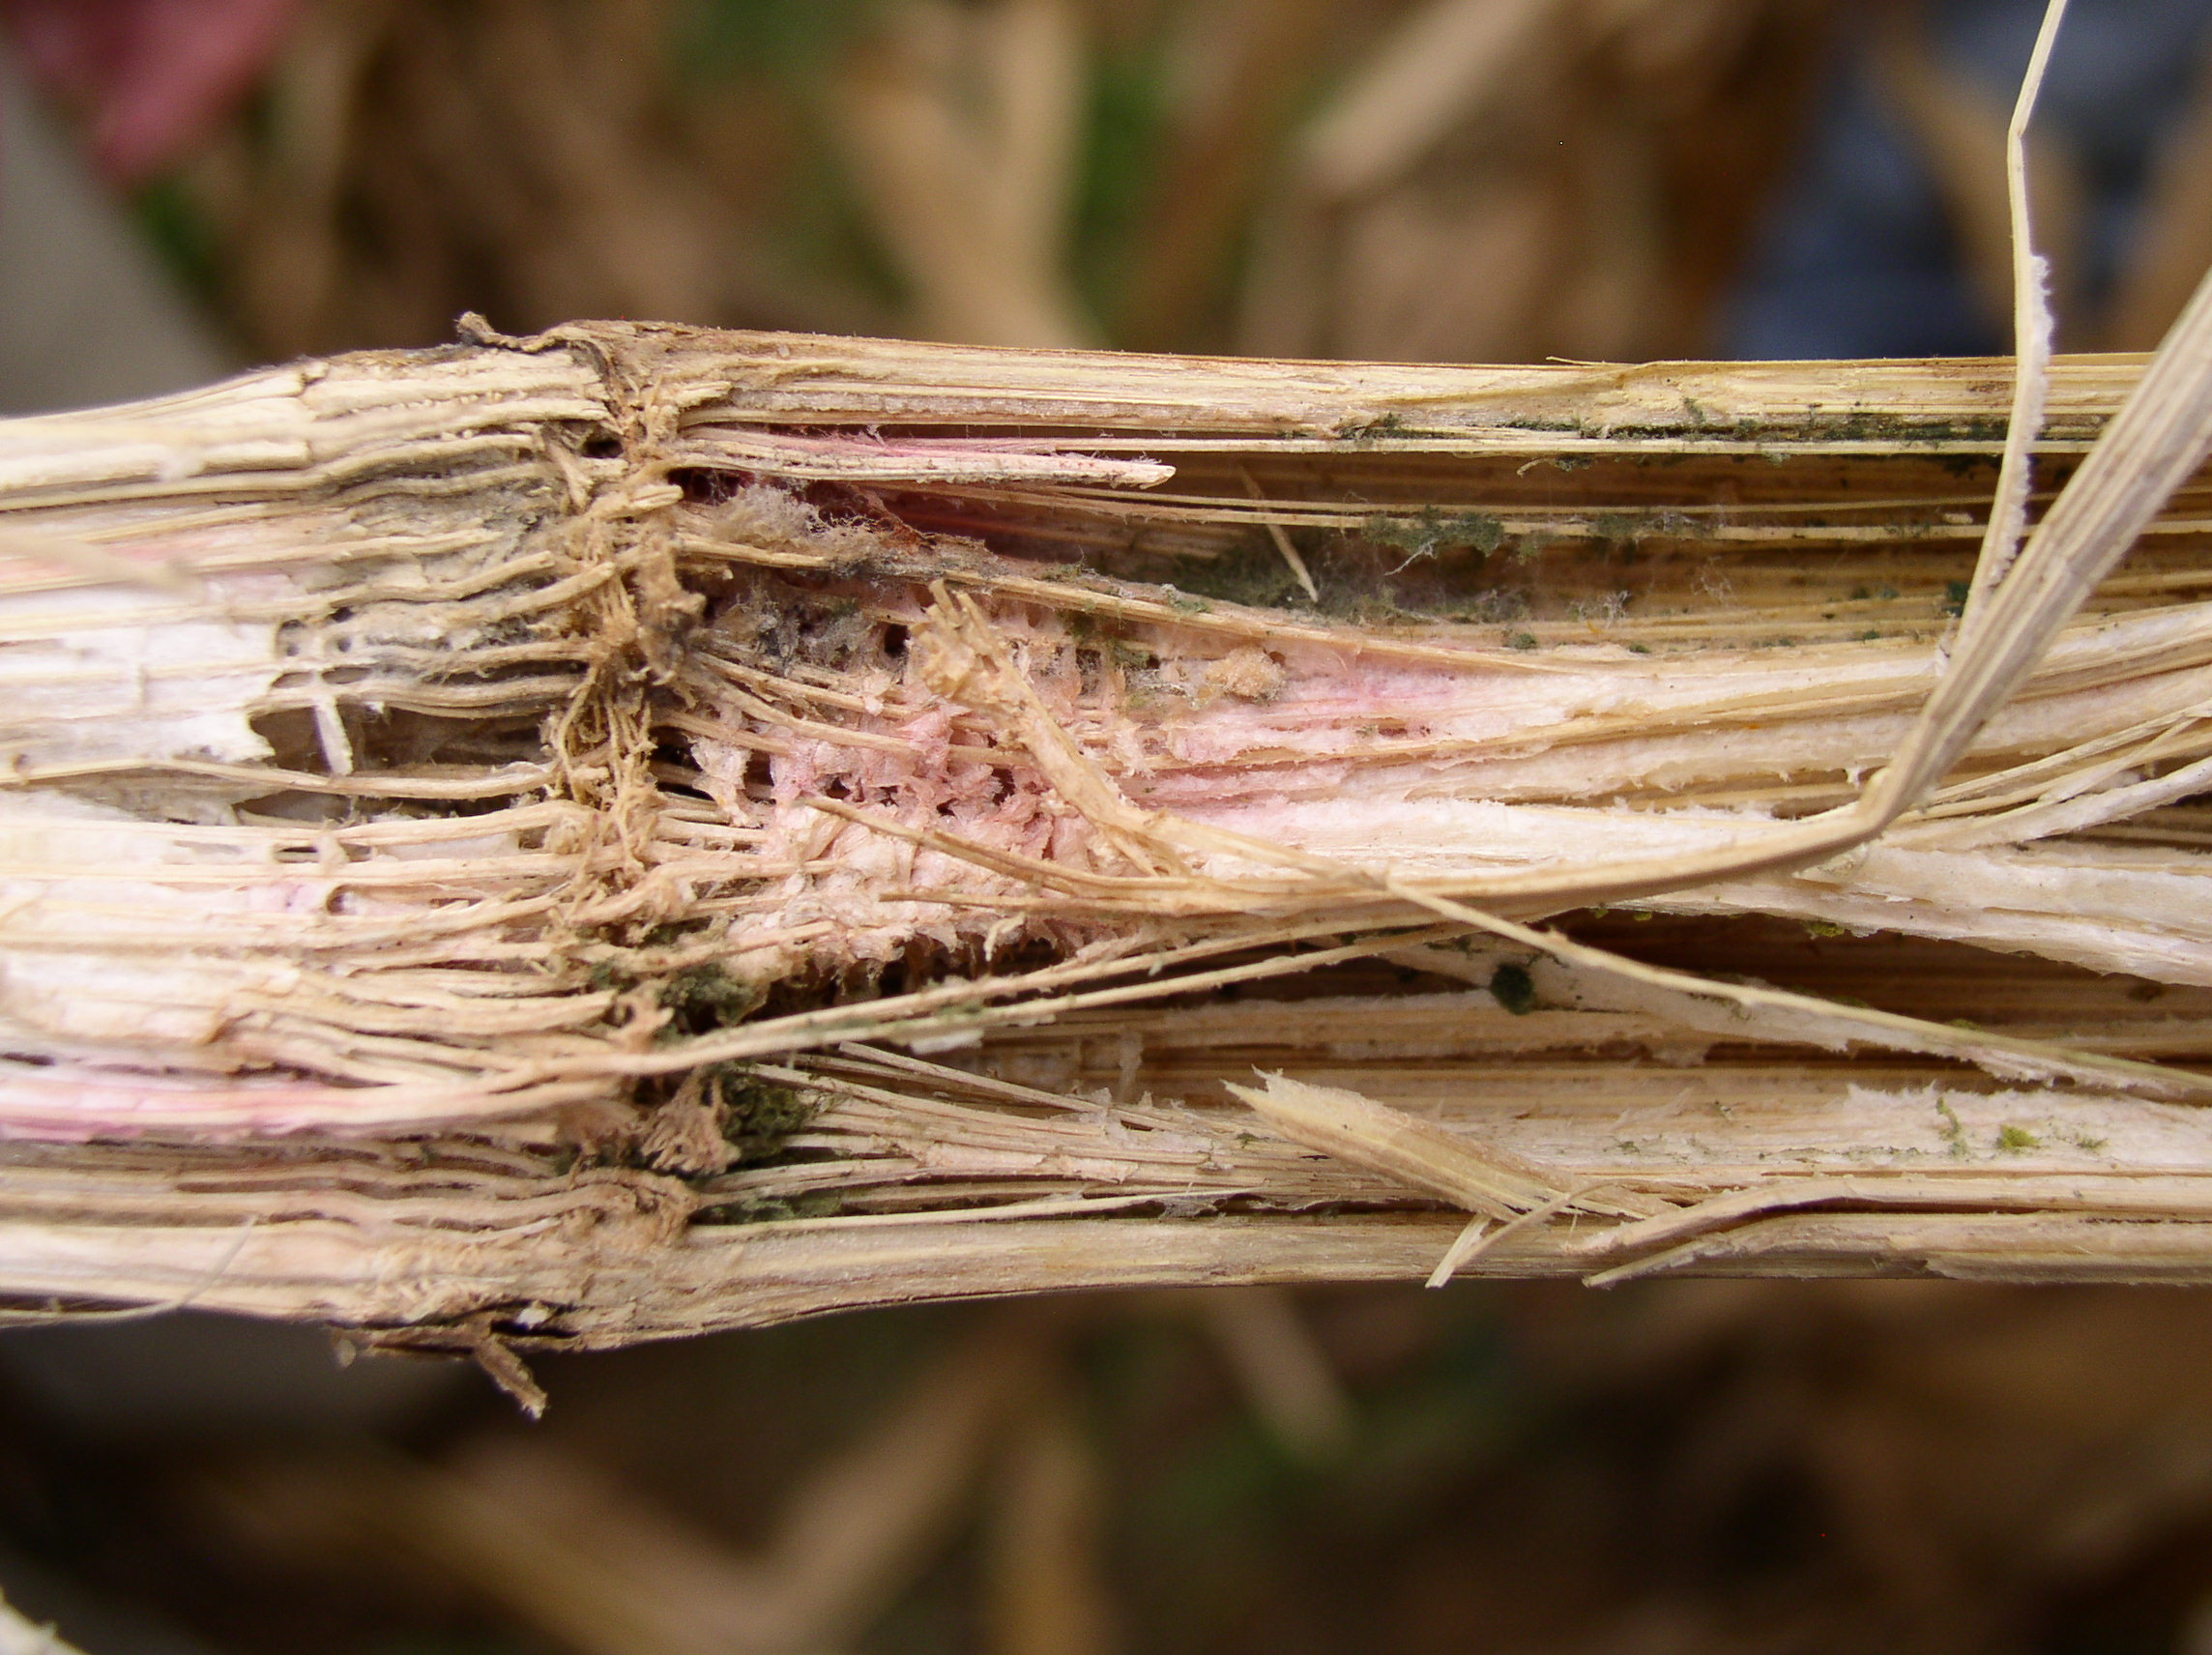 Pith shredding and discoloration indicative of Gibberella stalk rot.